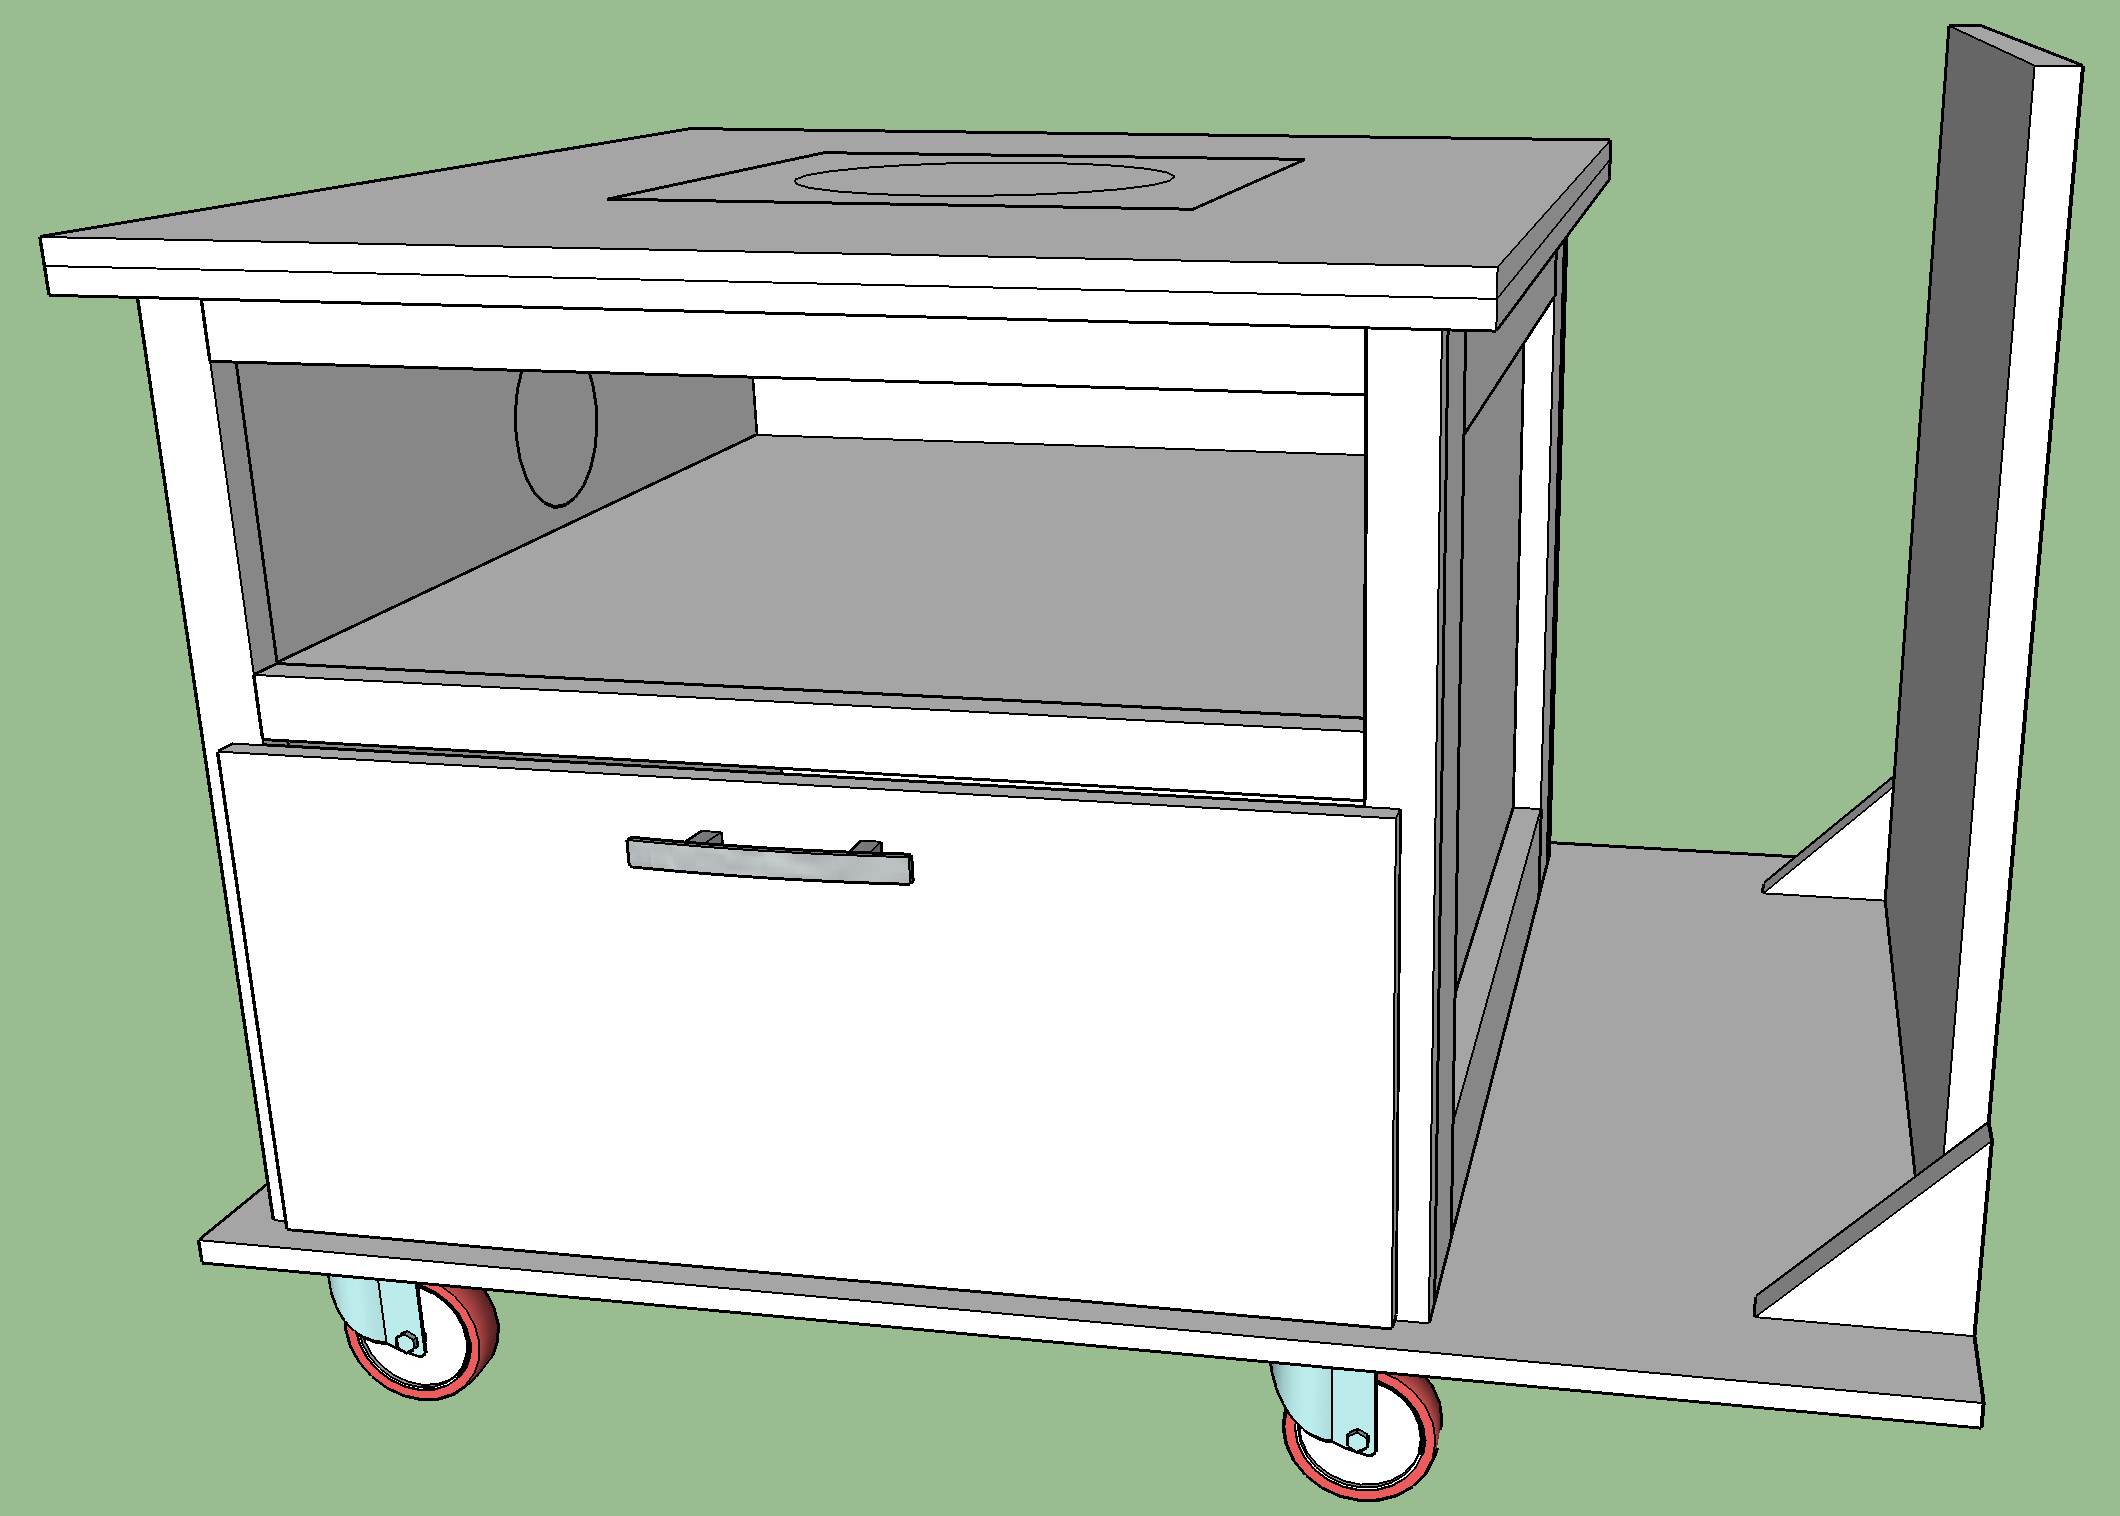 table-saw-cart-model-final.png